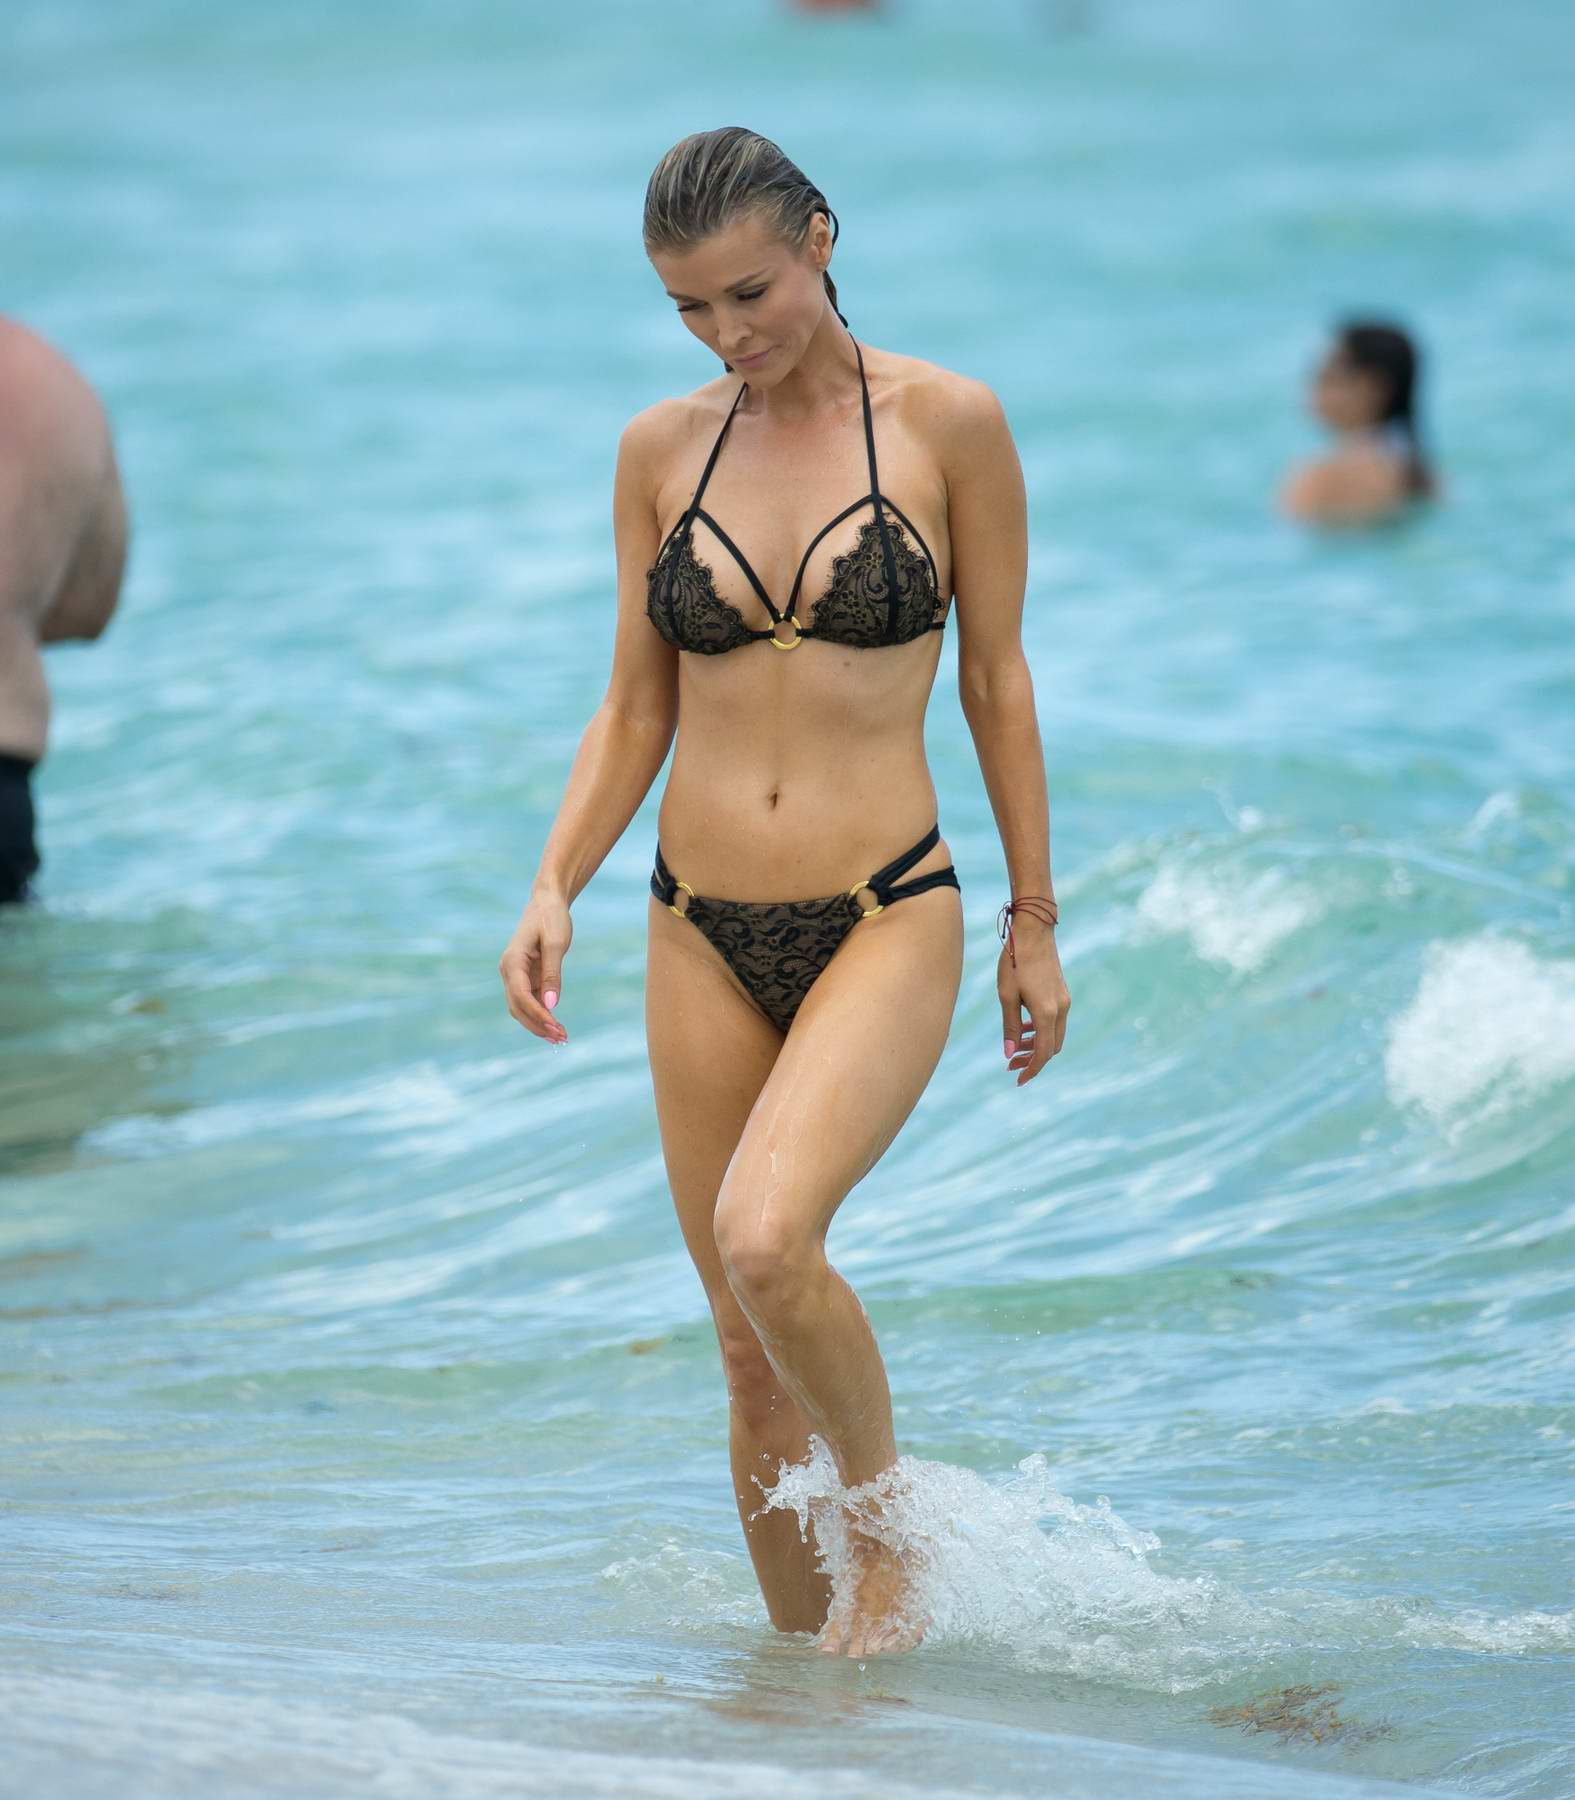 Joanna Krupa in Bikini with her Husband on the Miami Beach just a day after they filed for Divorce